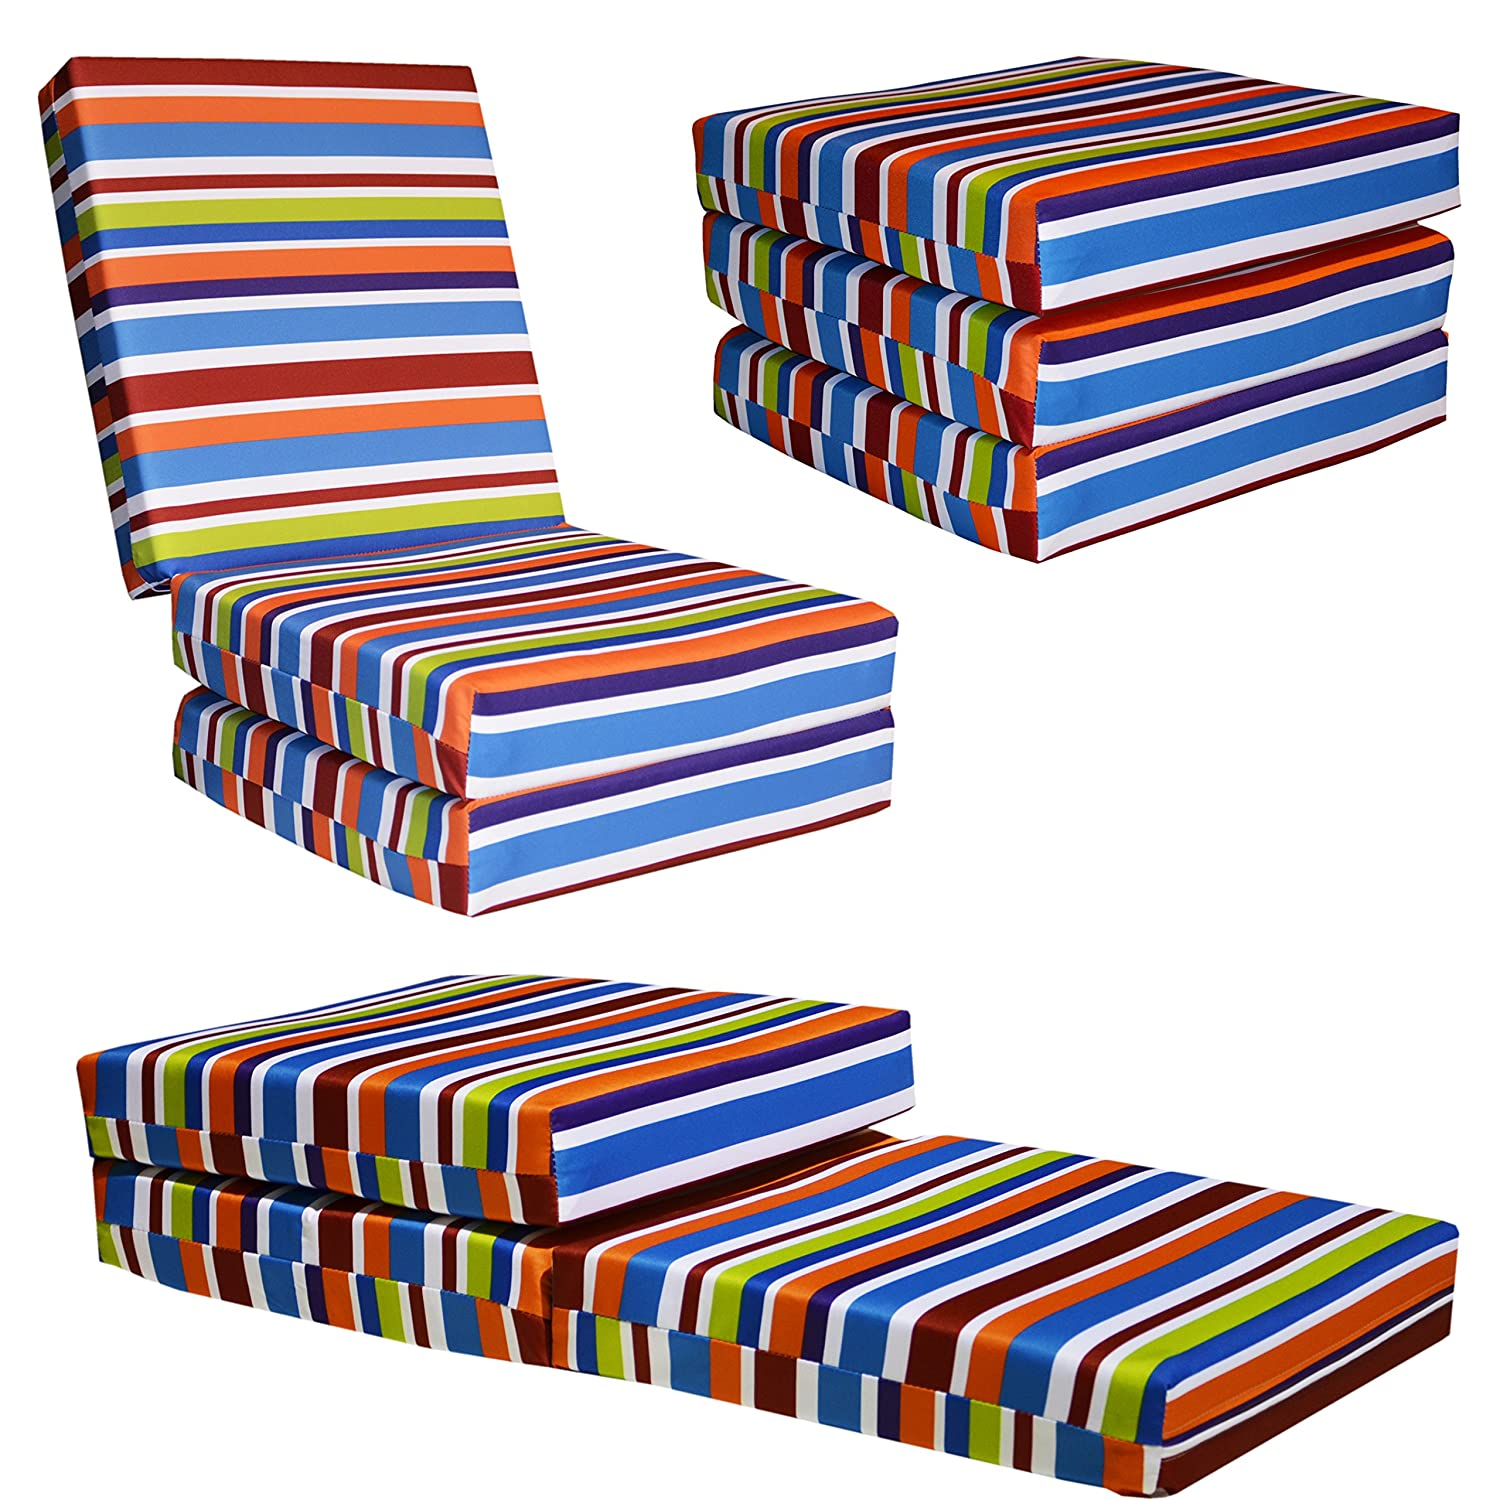 KIDS CHAIRBED BLUE STRIPE Kids Folding Chair Bed Futon Guest Z